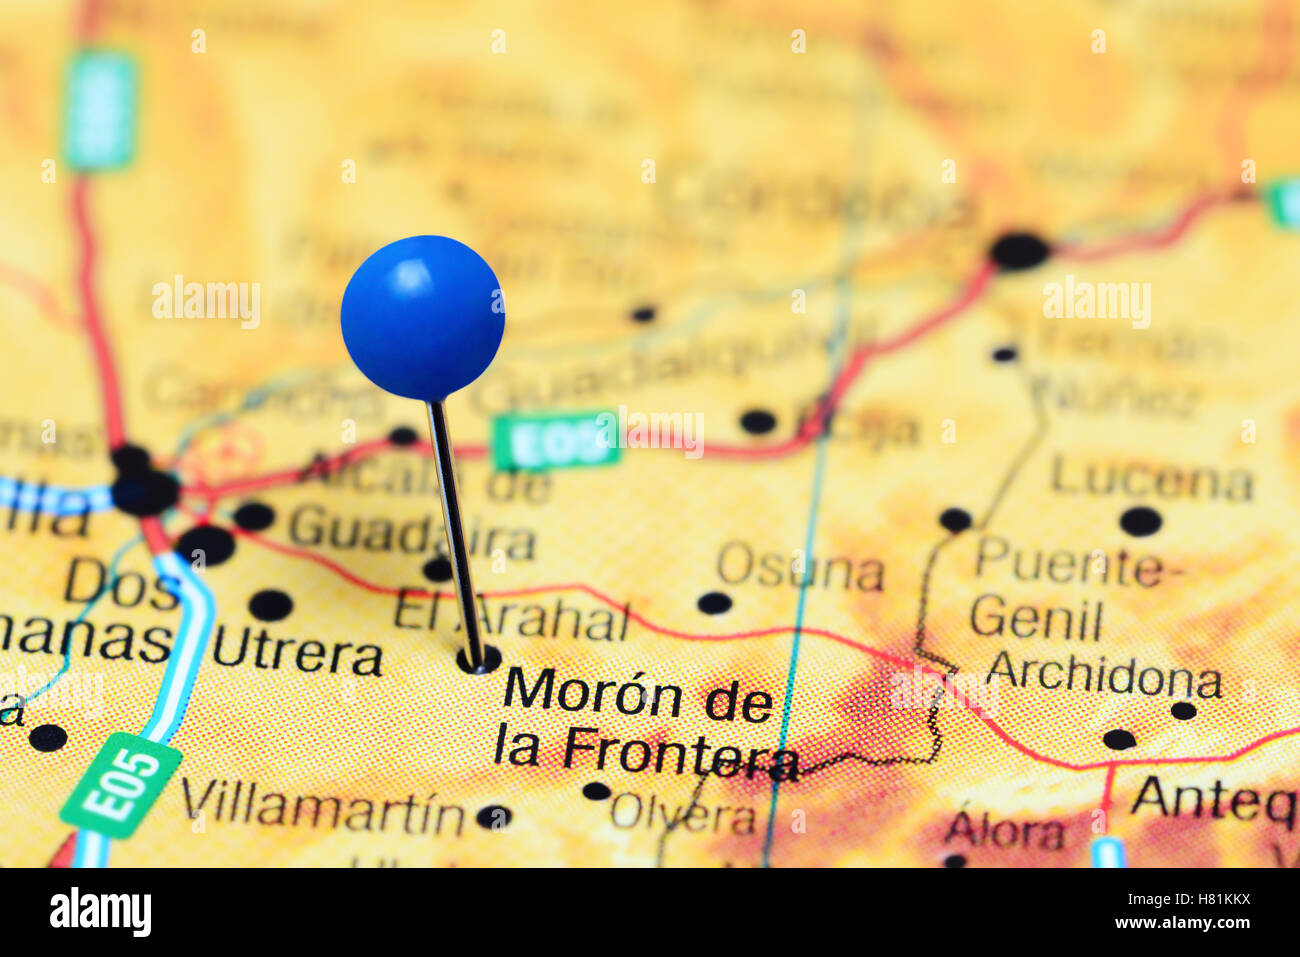 Moron Spain Map.Moron De La Frontera Pinned On A Map Of Spain Stock Photo 125427230